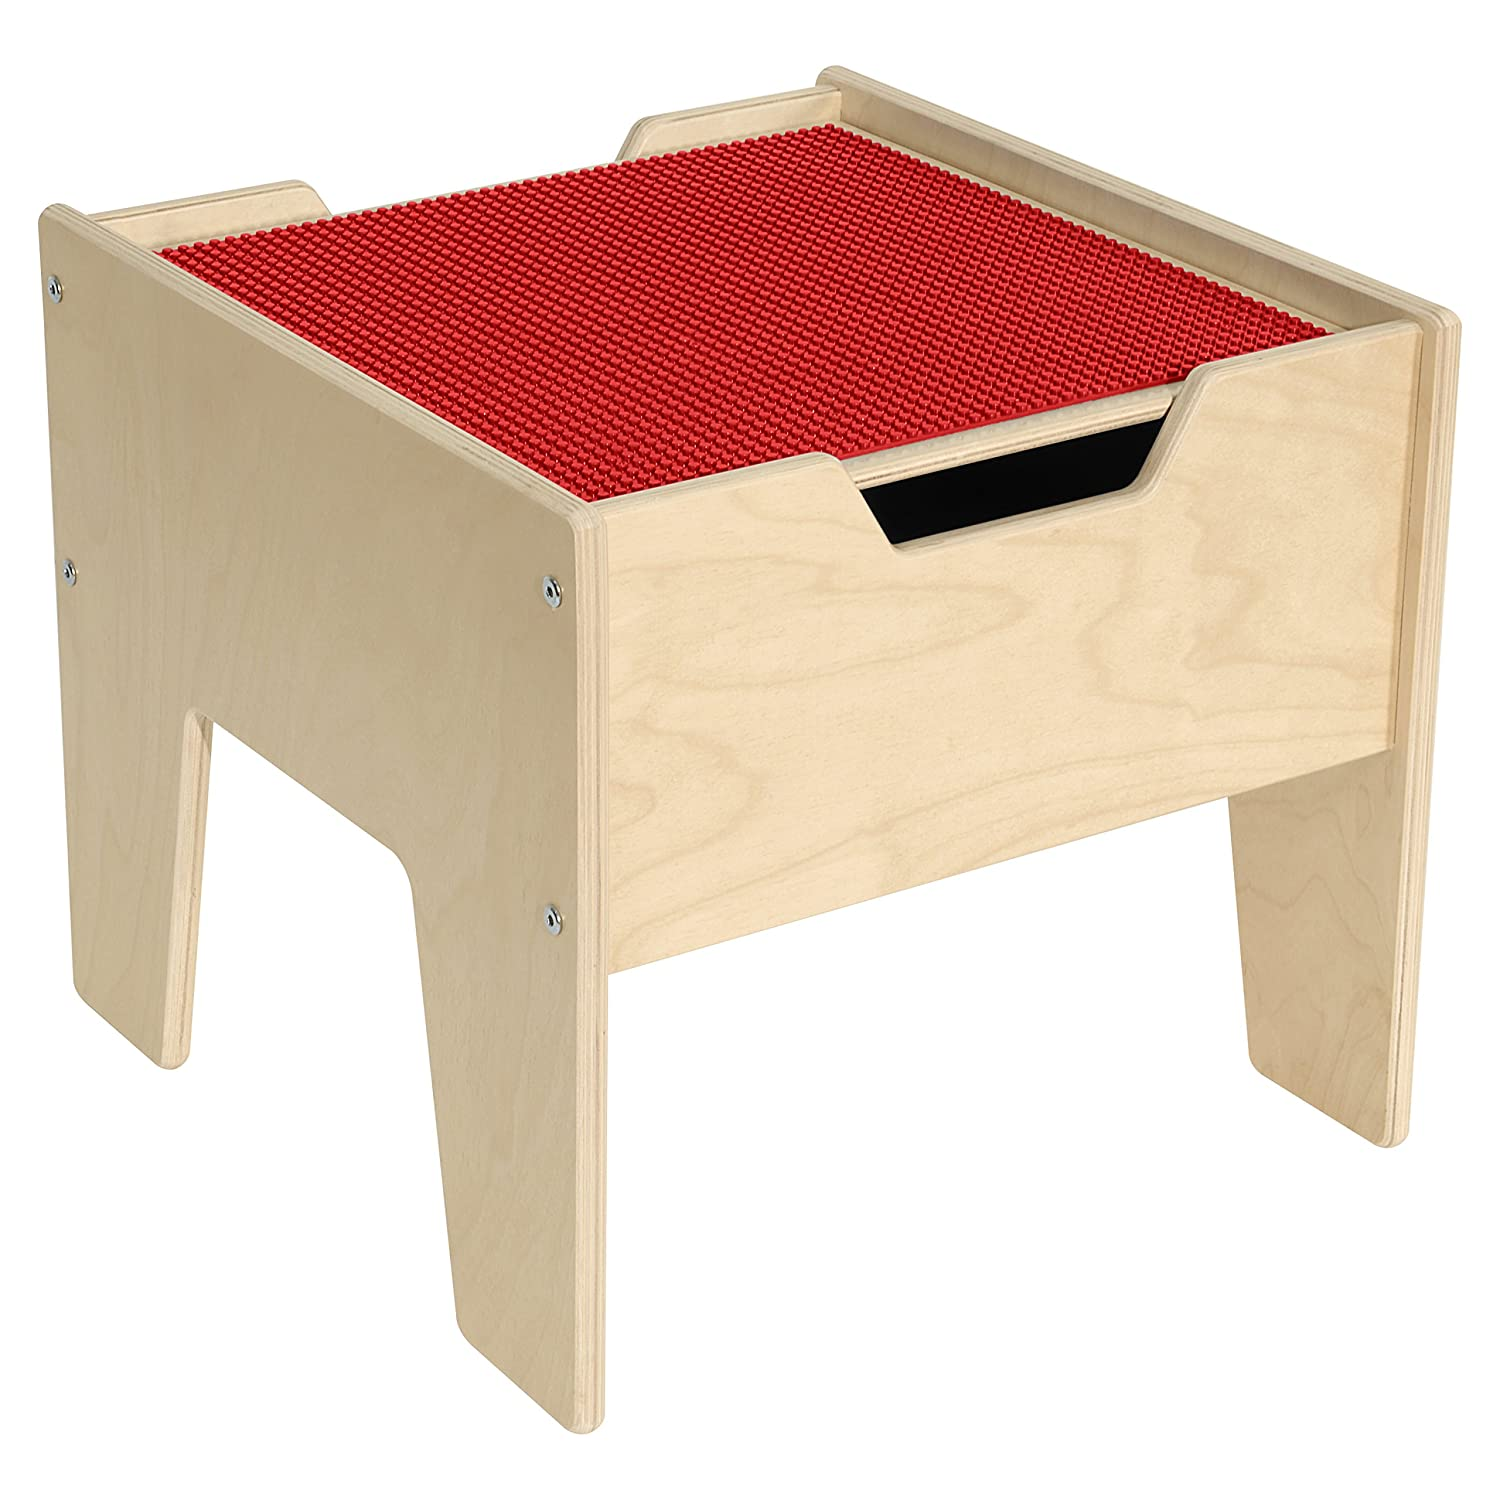 Image of Building Sets Contender 2-N-1 Activity Table with Red Lego Compatible Top - RTA